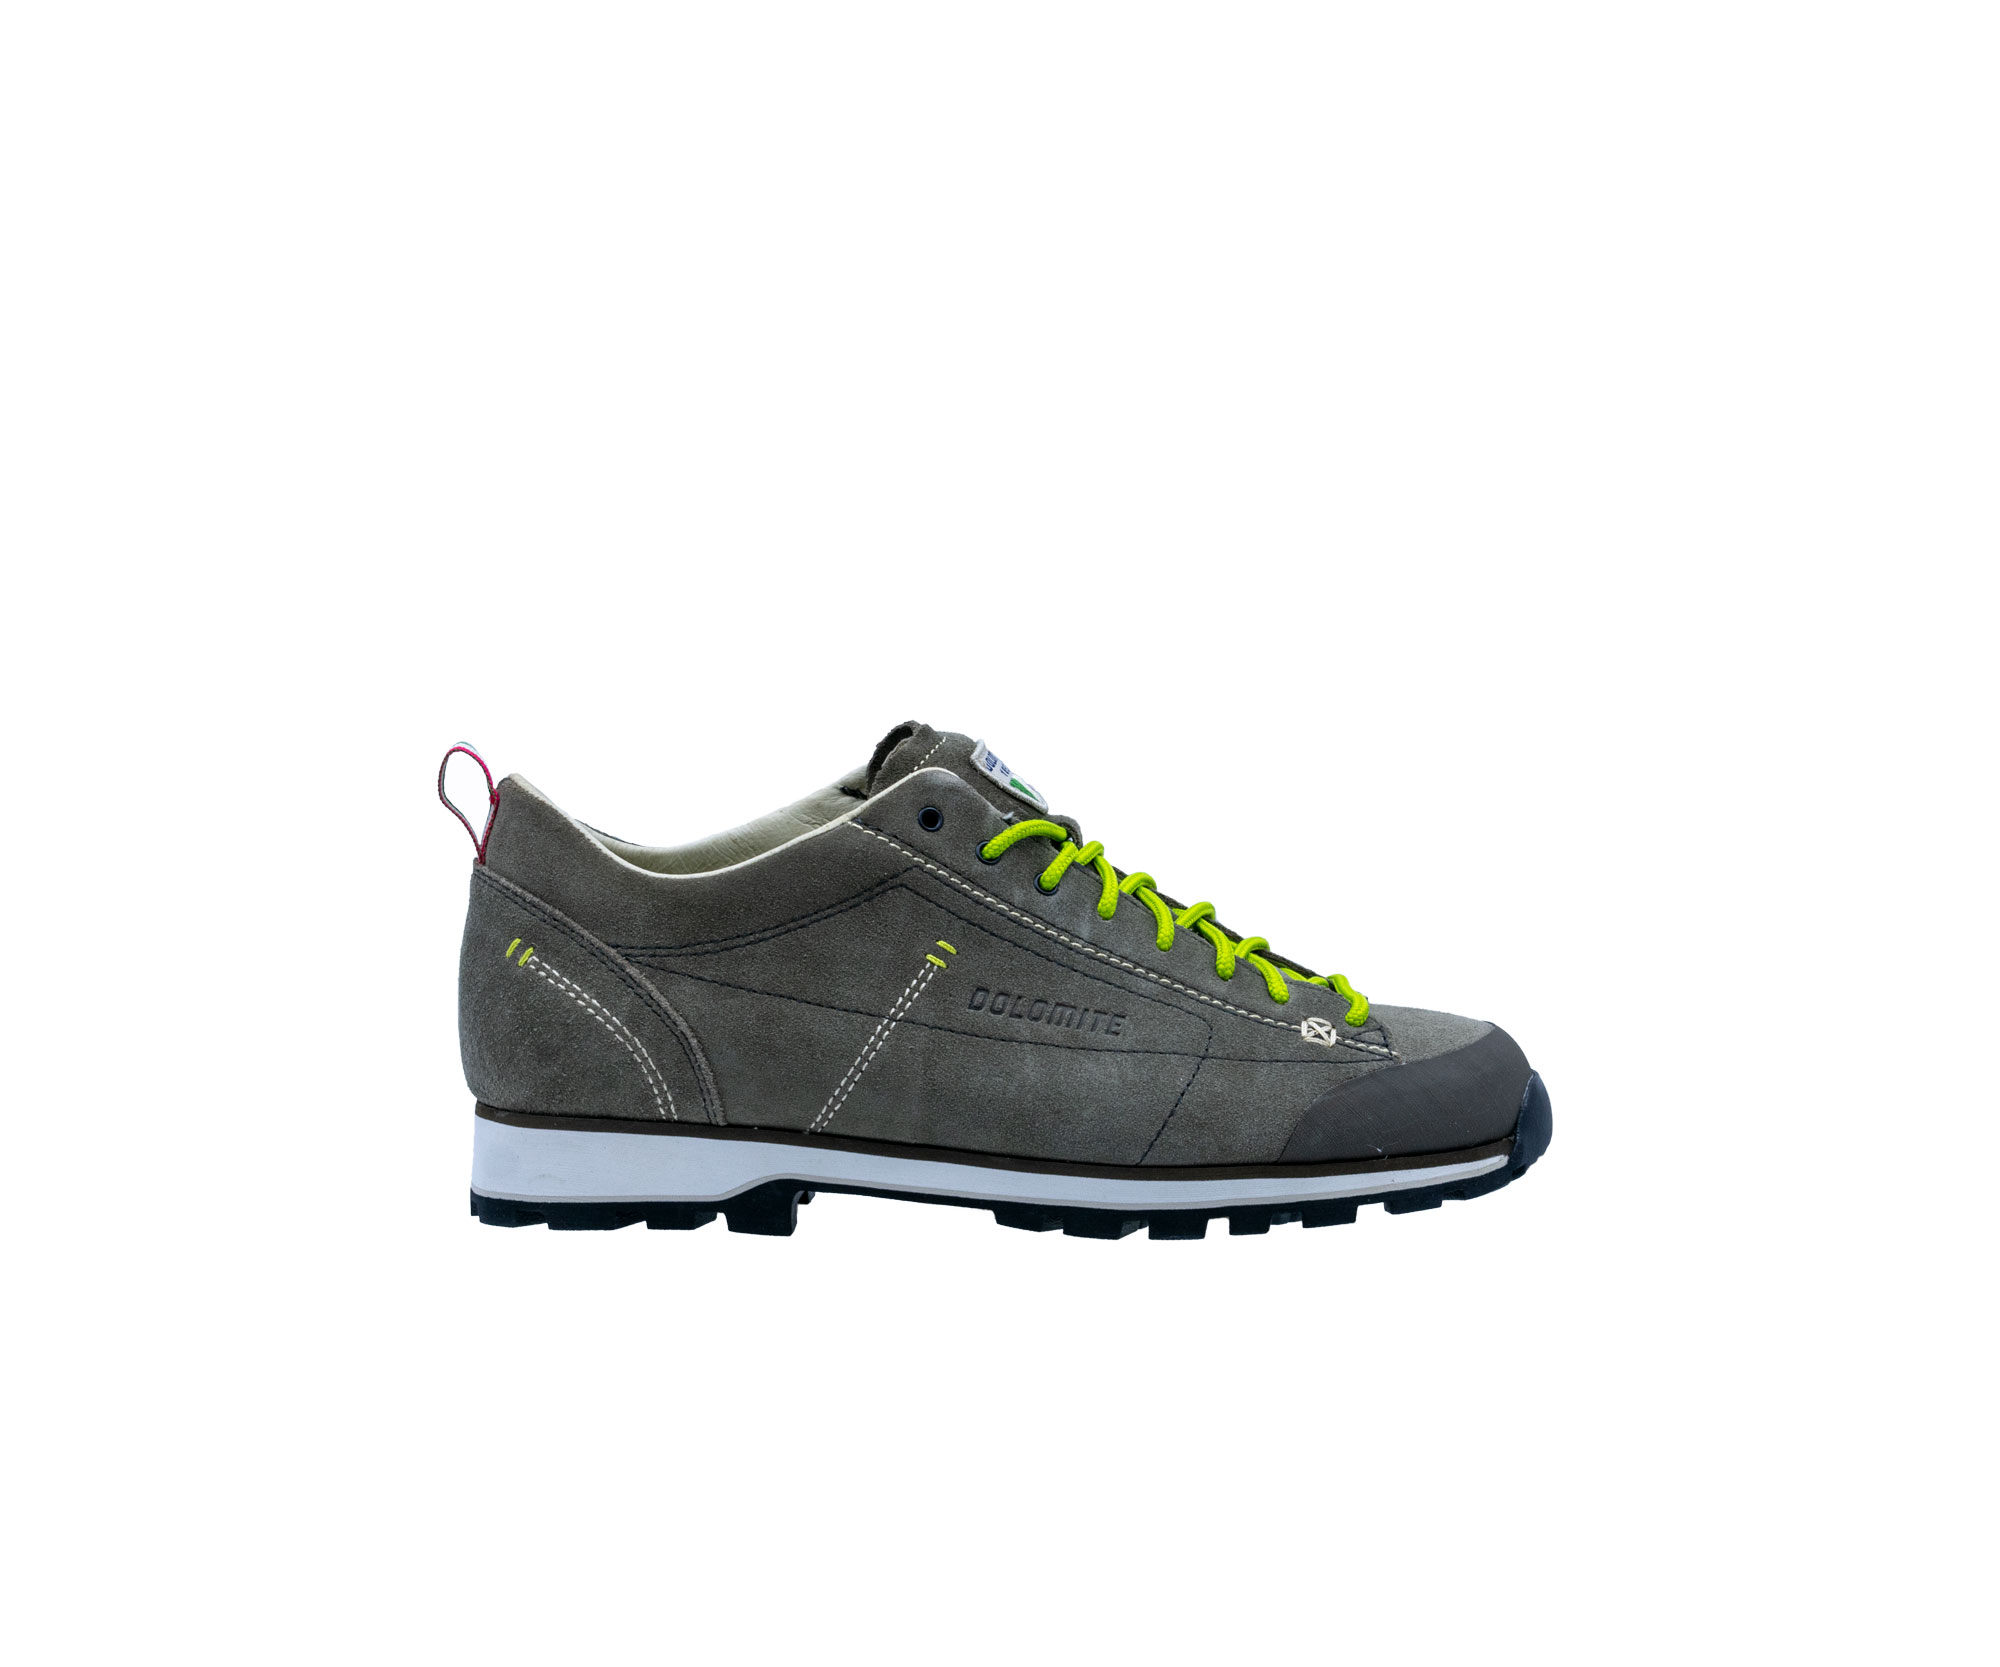 I20 Dolomite 54 Low Mud Green.jpg